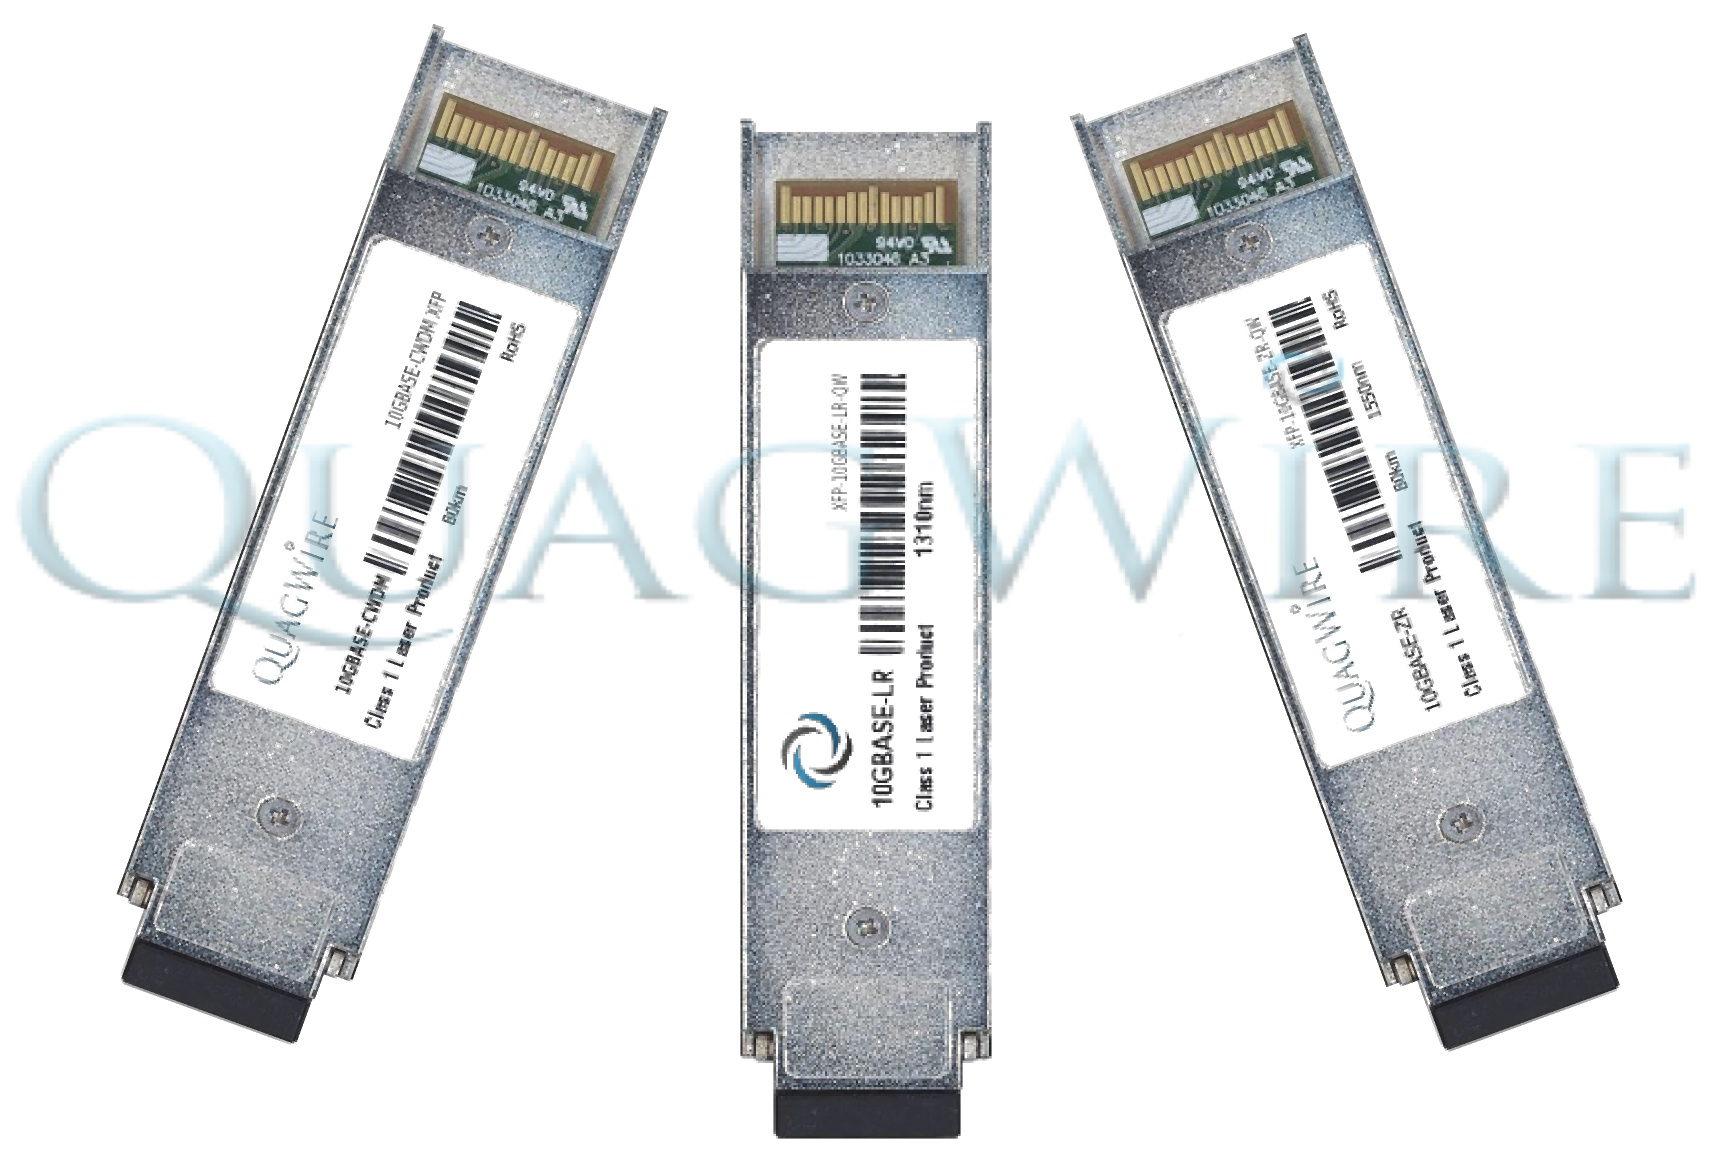 100-01506 – Calix Compatible 10GBASE-ZR XFP Transceiver